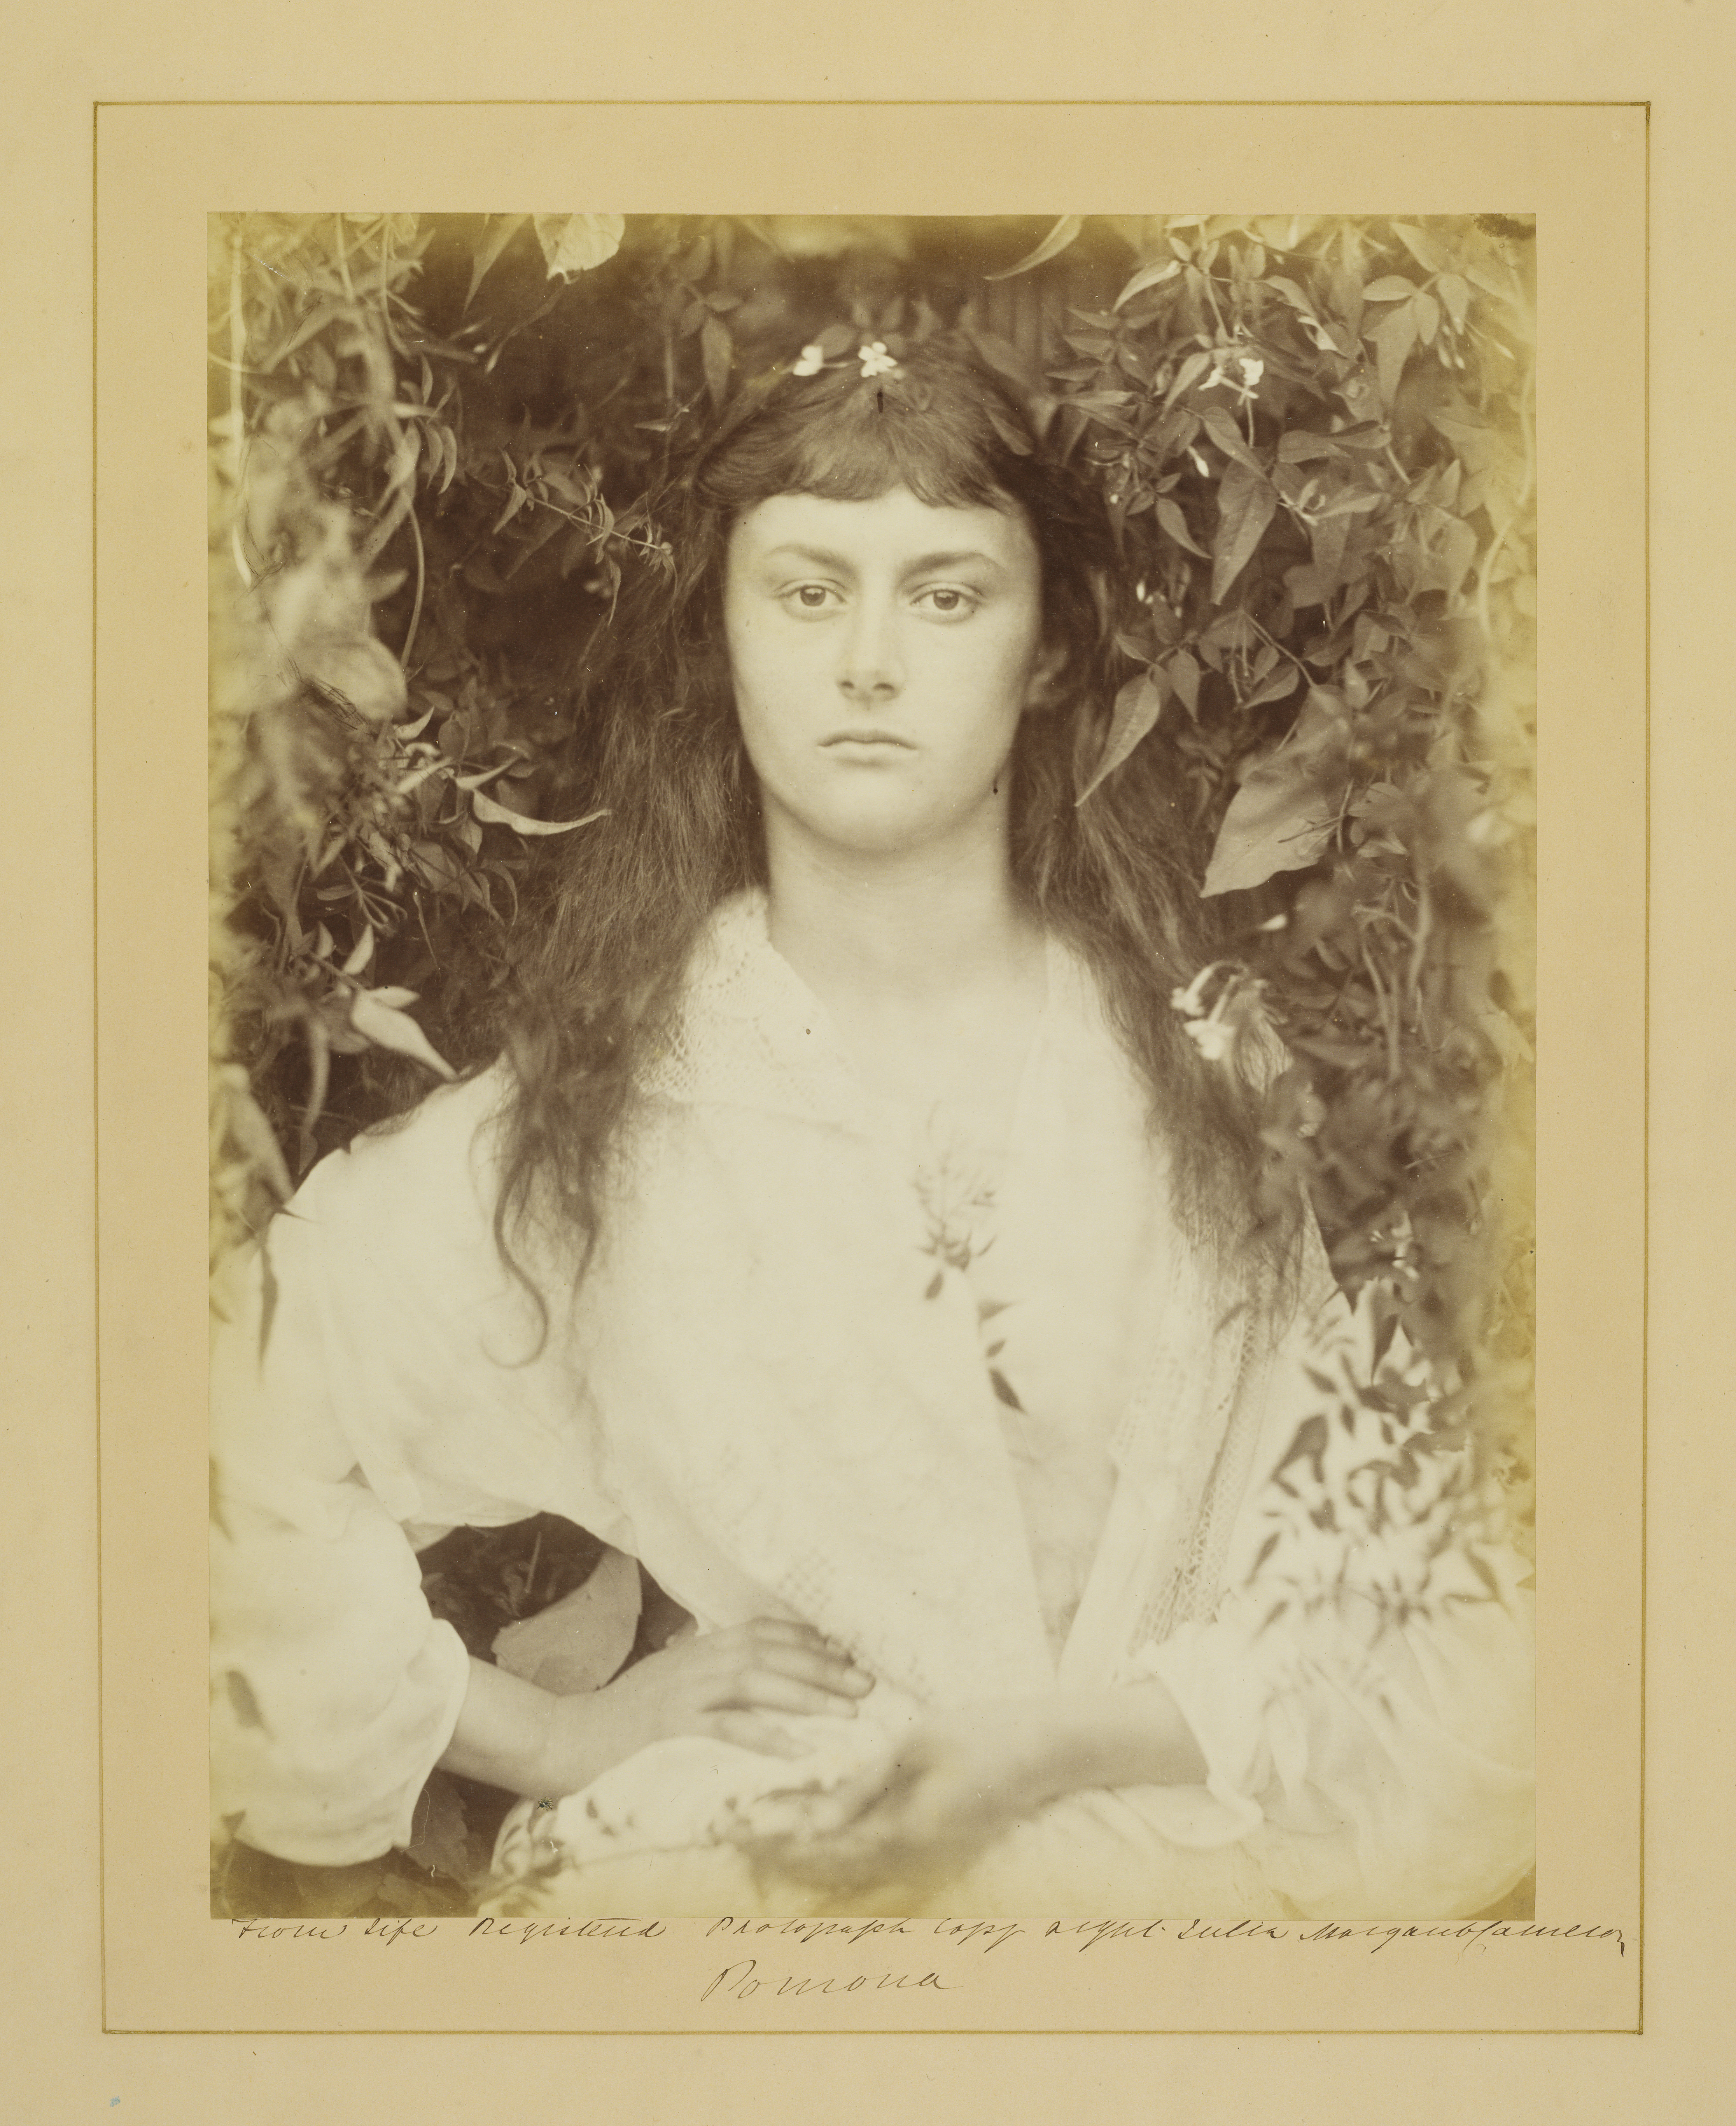 Photograph of the 'real' Alice Liddell, by Julia Margaret Cameron